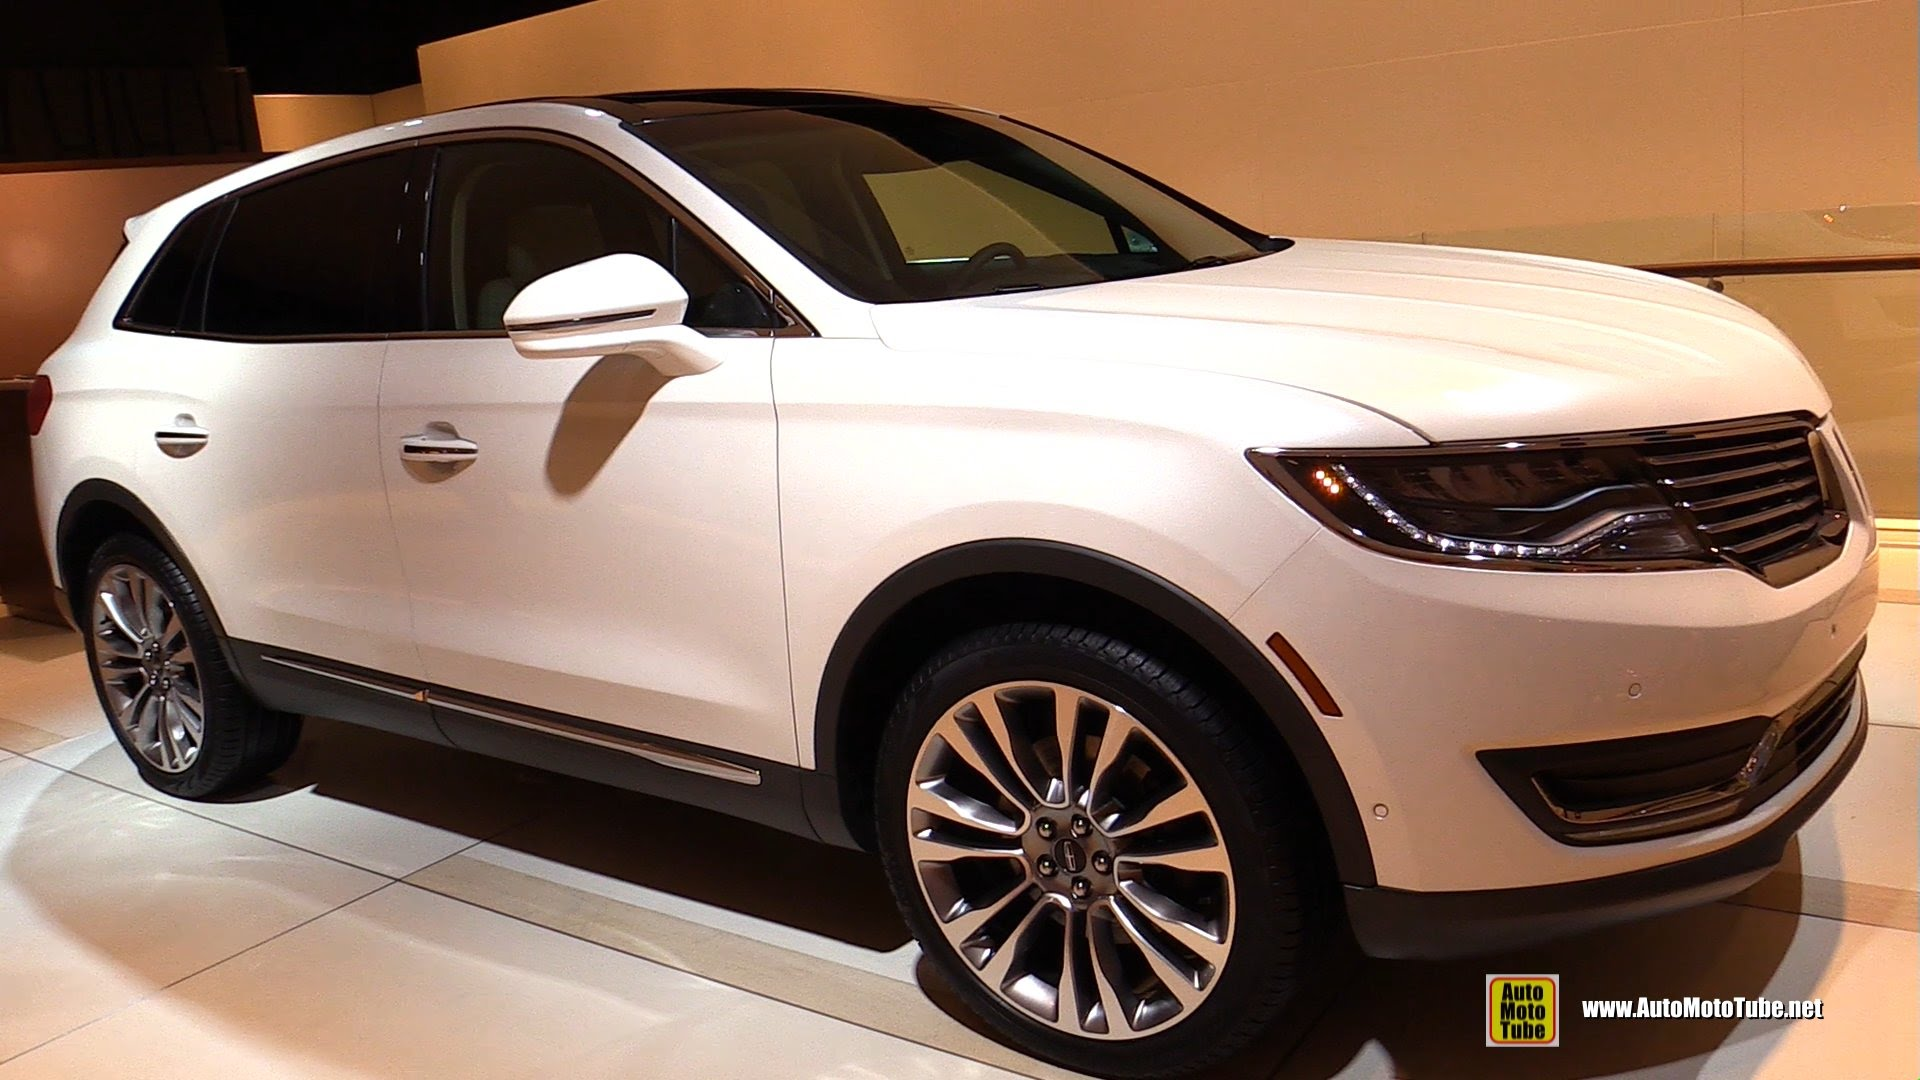 2016 Lincoln MKX EcoBoost - Exterior, Interior Walkaround - Debut at 2015 Detroit Auto Show